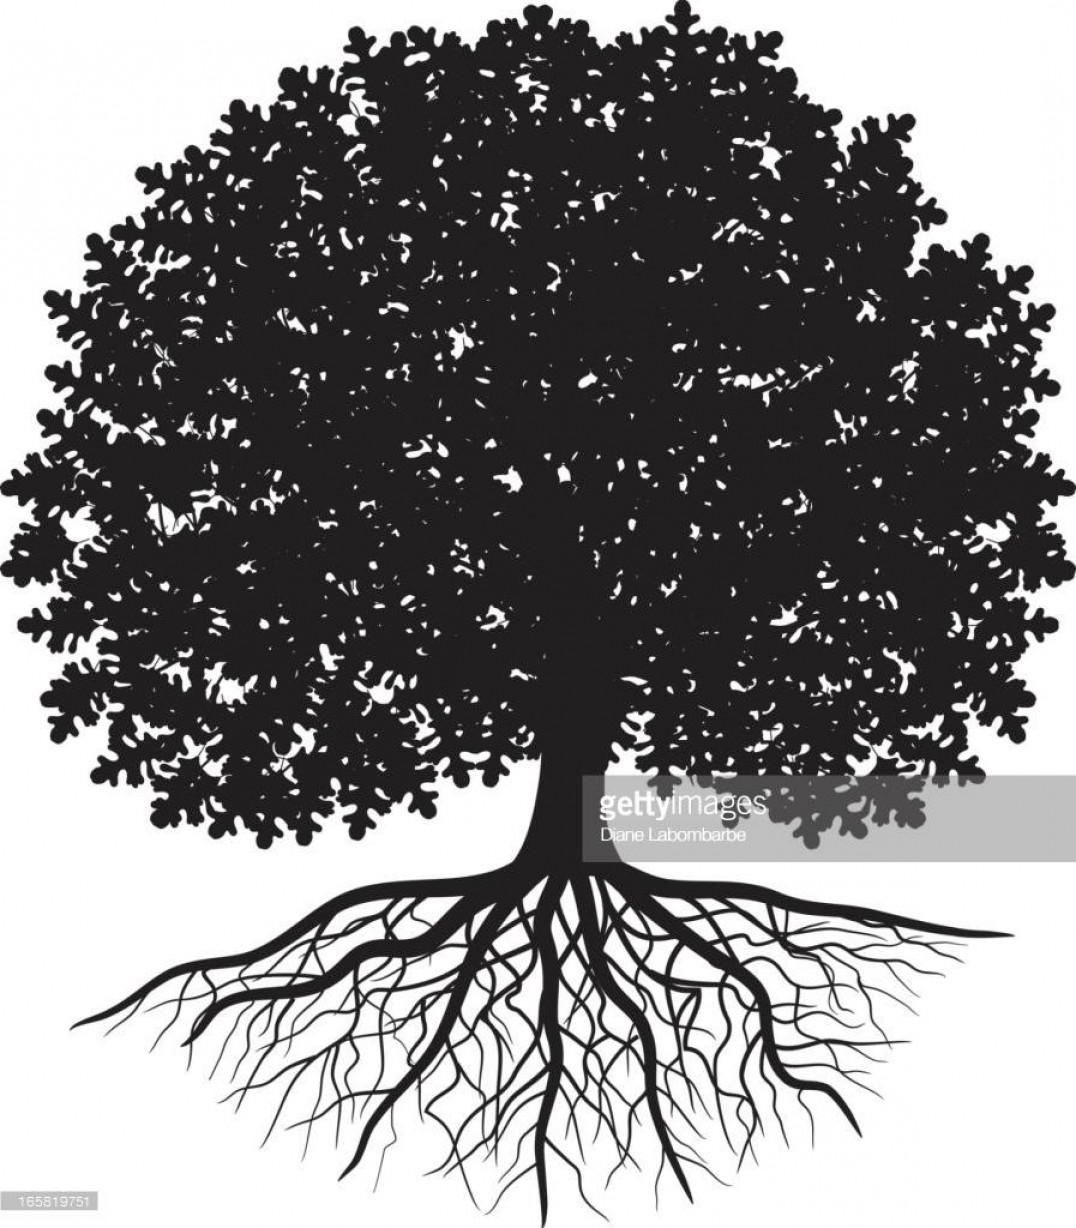 Oak Tree Silhouette Vector Graphics: Best Hd Black Silhouette Of Oak Tree With Leaves And Visible Roots Vector Pictures